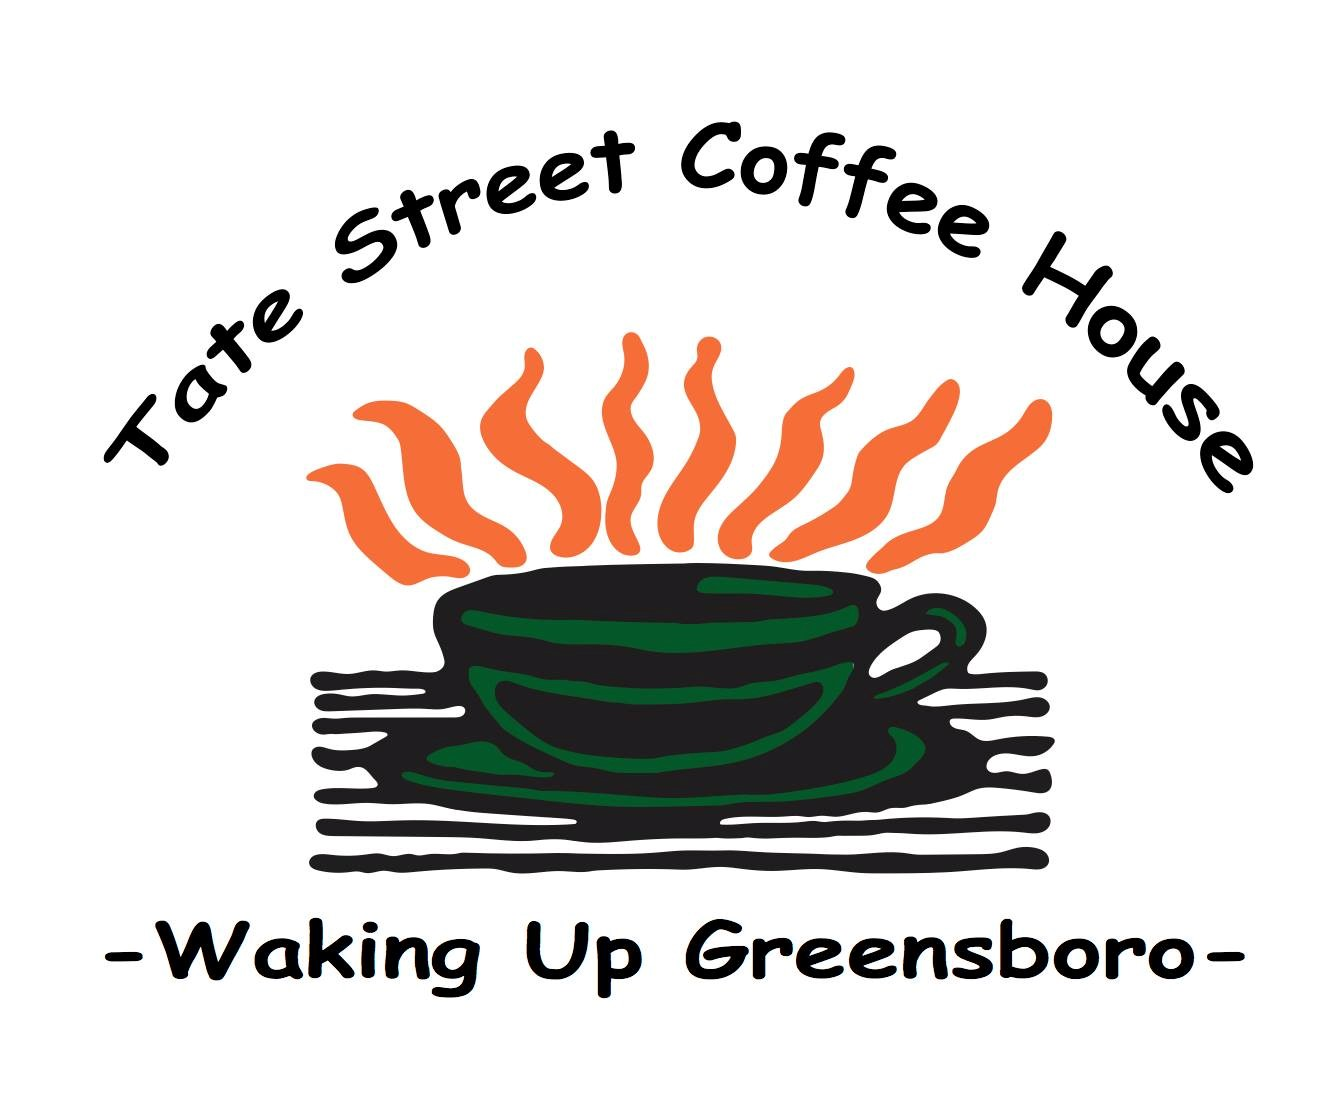 Tate Street Coffee House